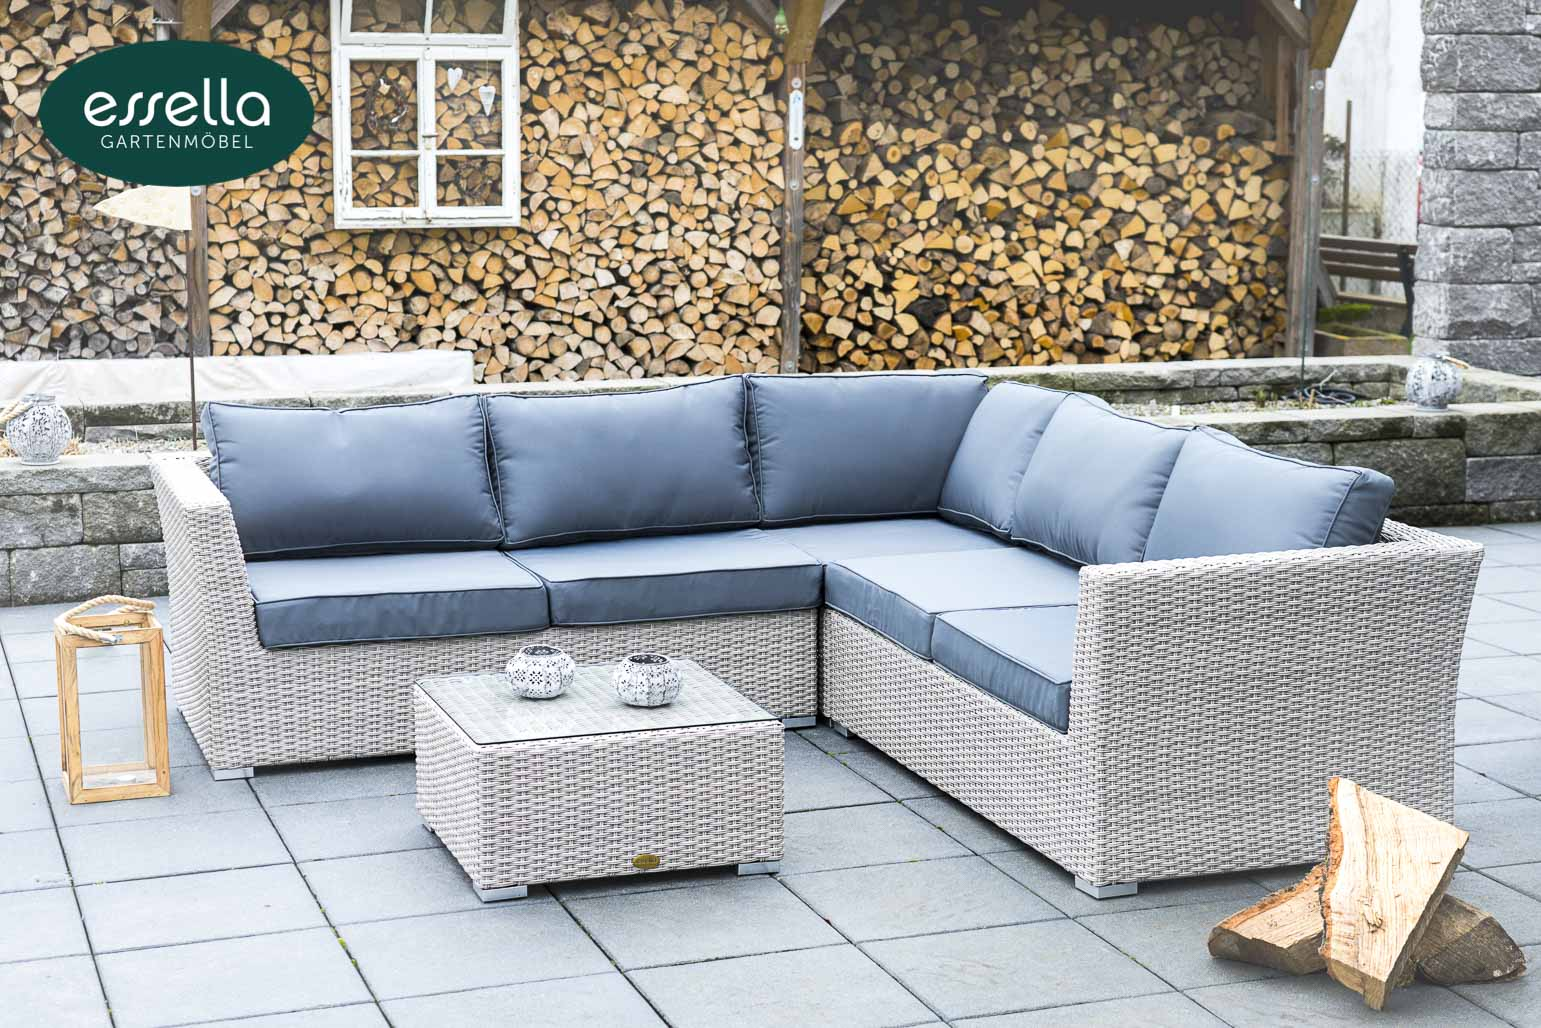 Essella Polyrattan Garten Lounge Boston Rundgeflecht